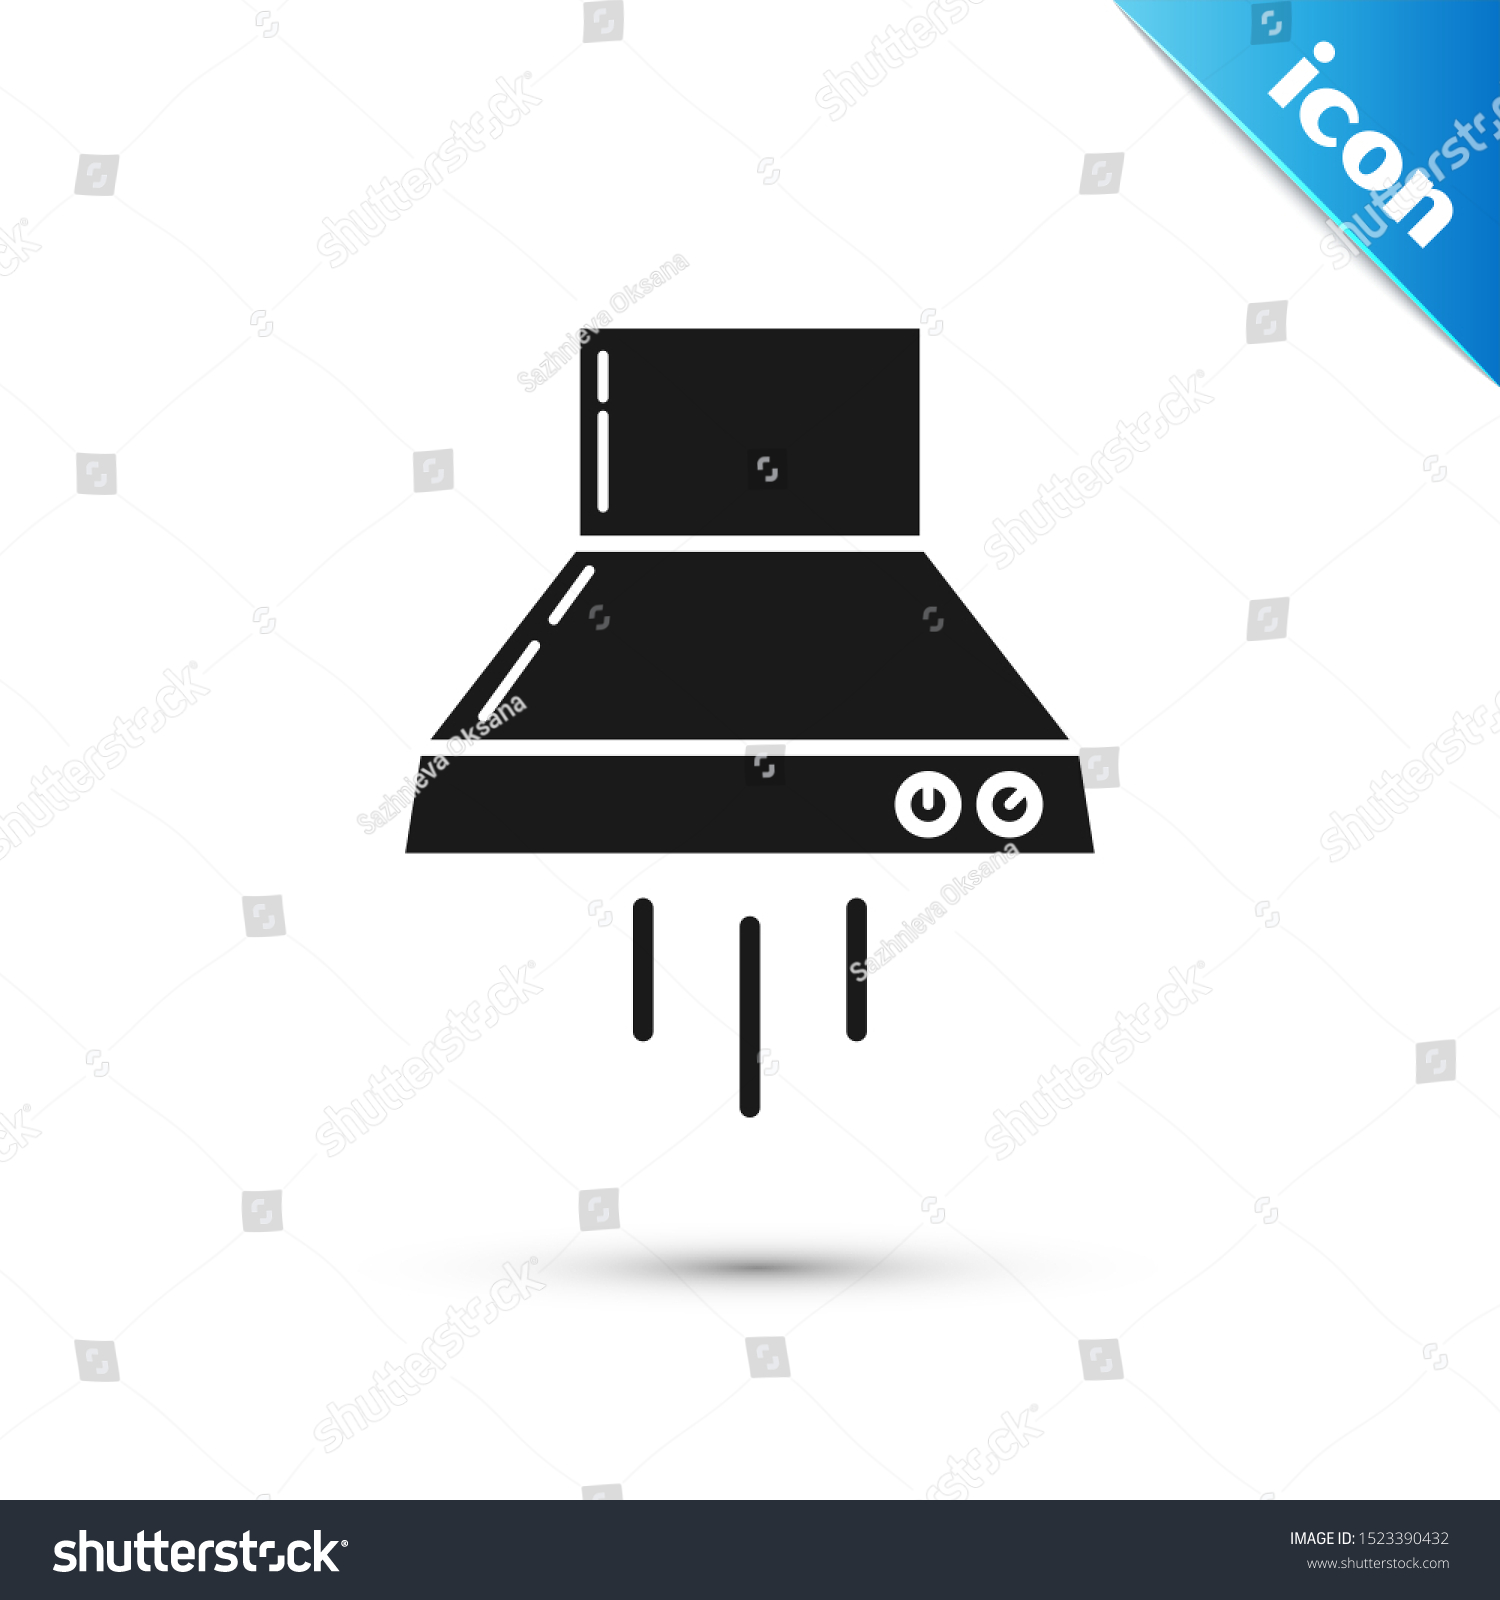 Black Kitchen Extractor Fan Icon Isolated Stock Vector ...